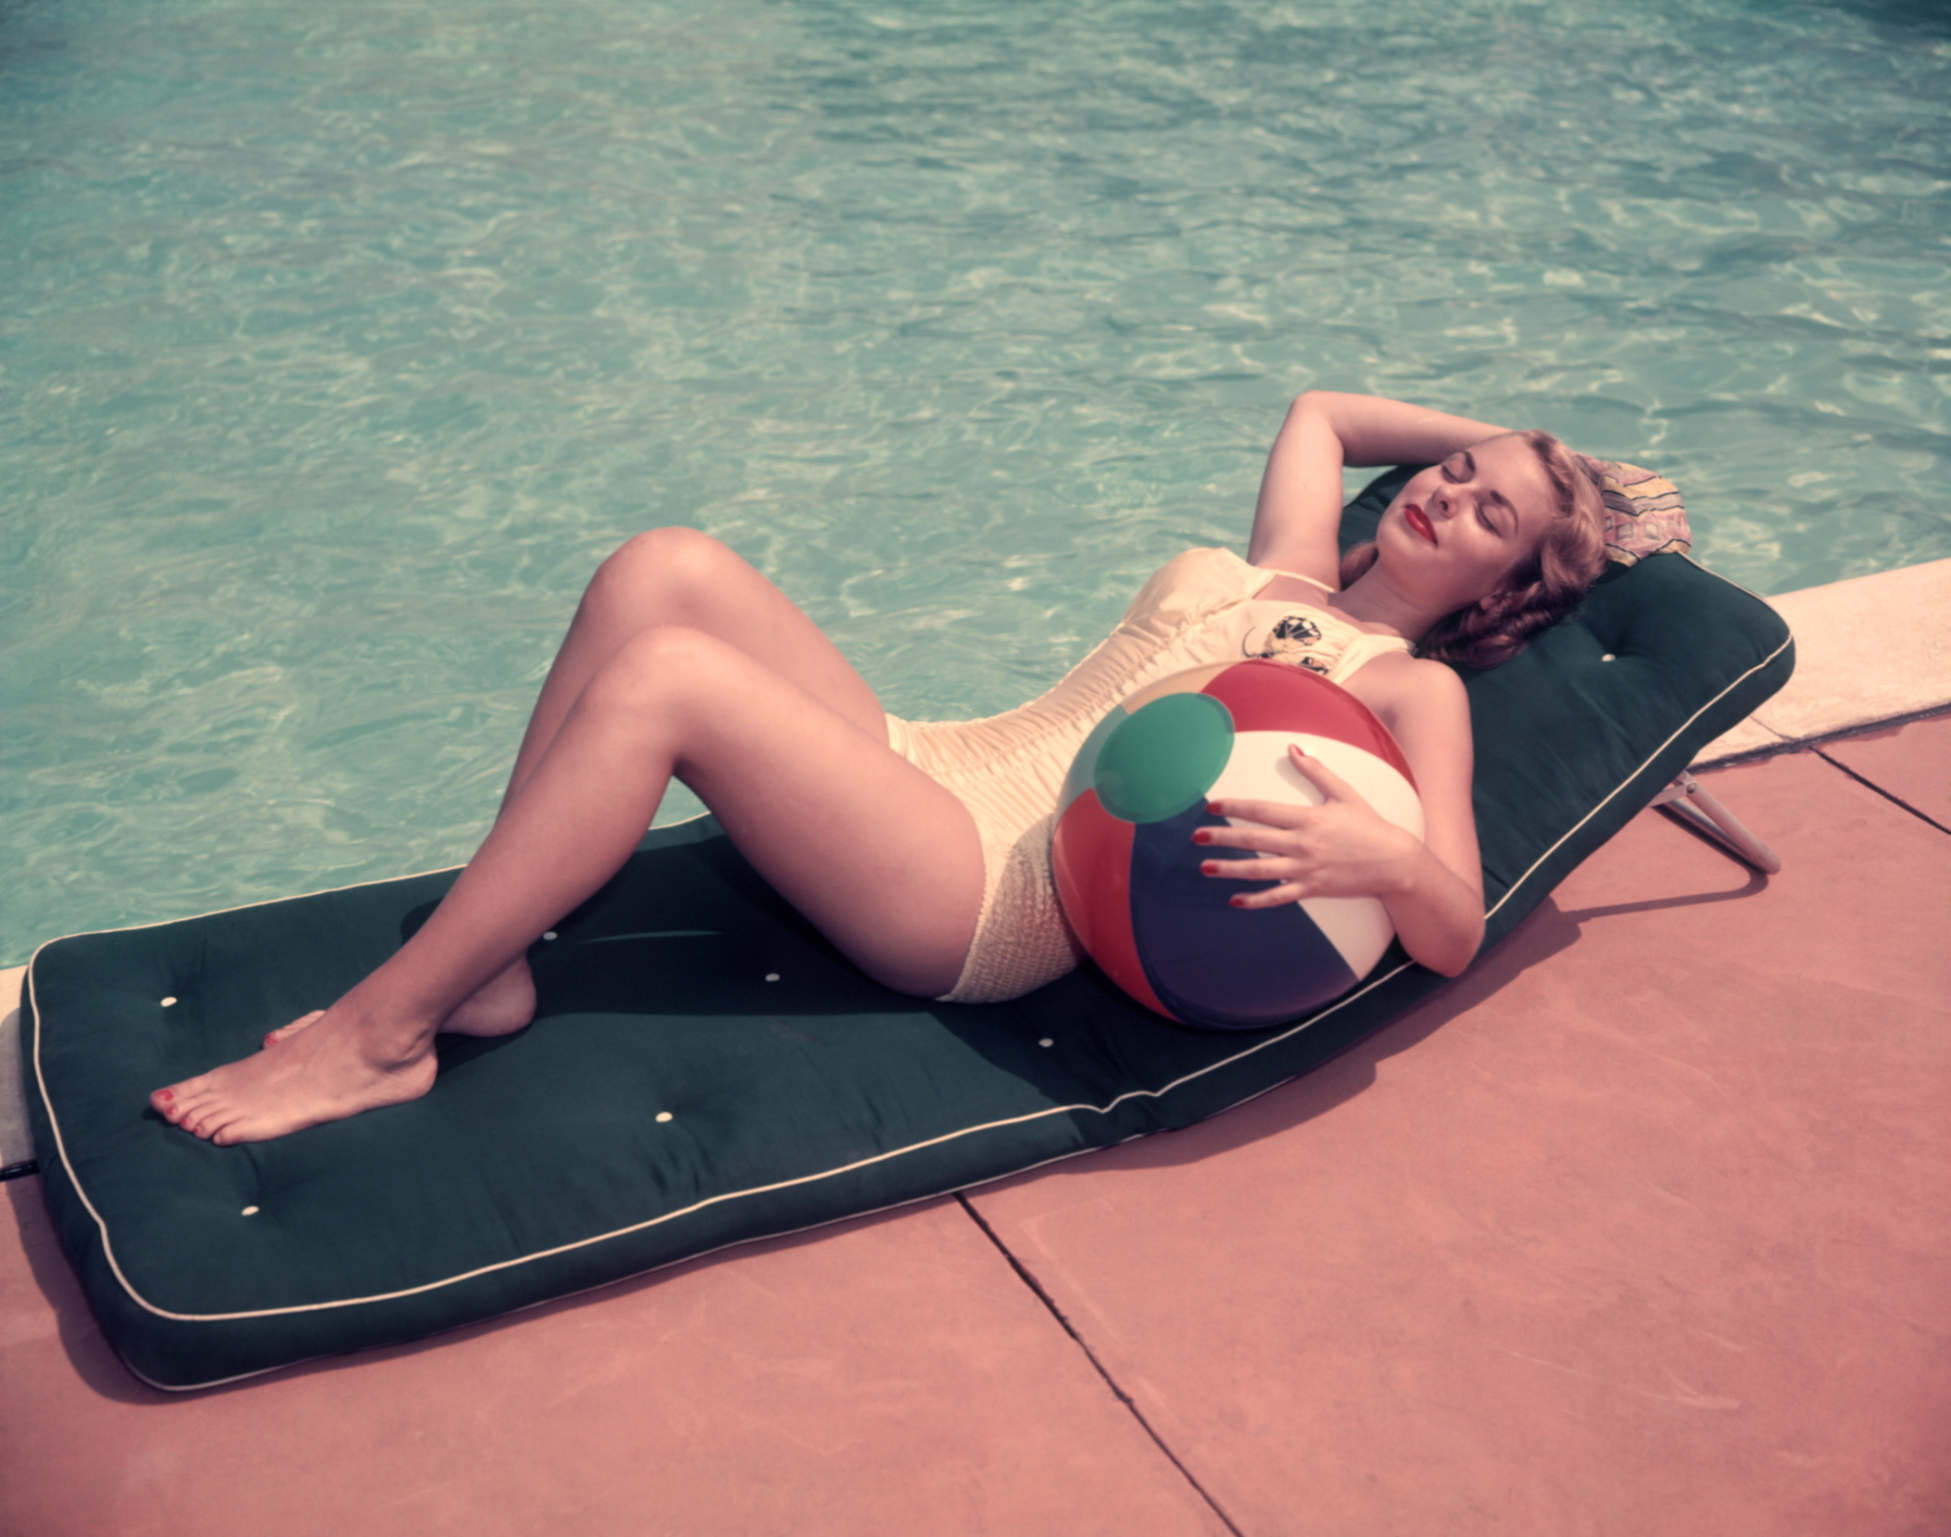 Wearing a swimsuit to work every day taught me to appreciate my body